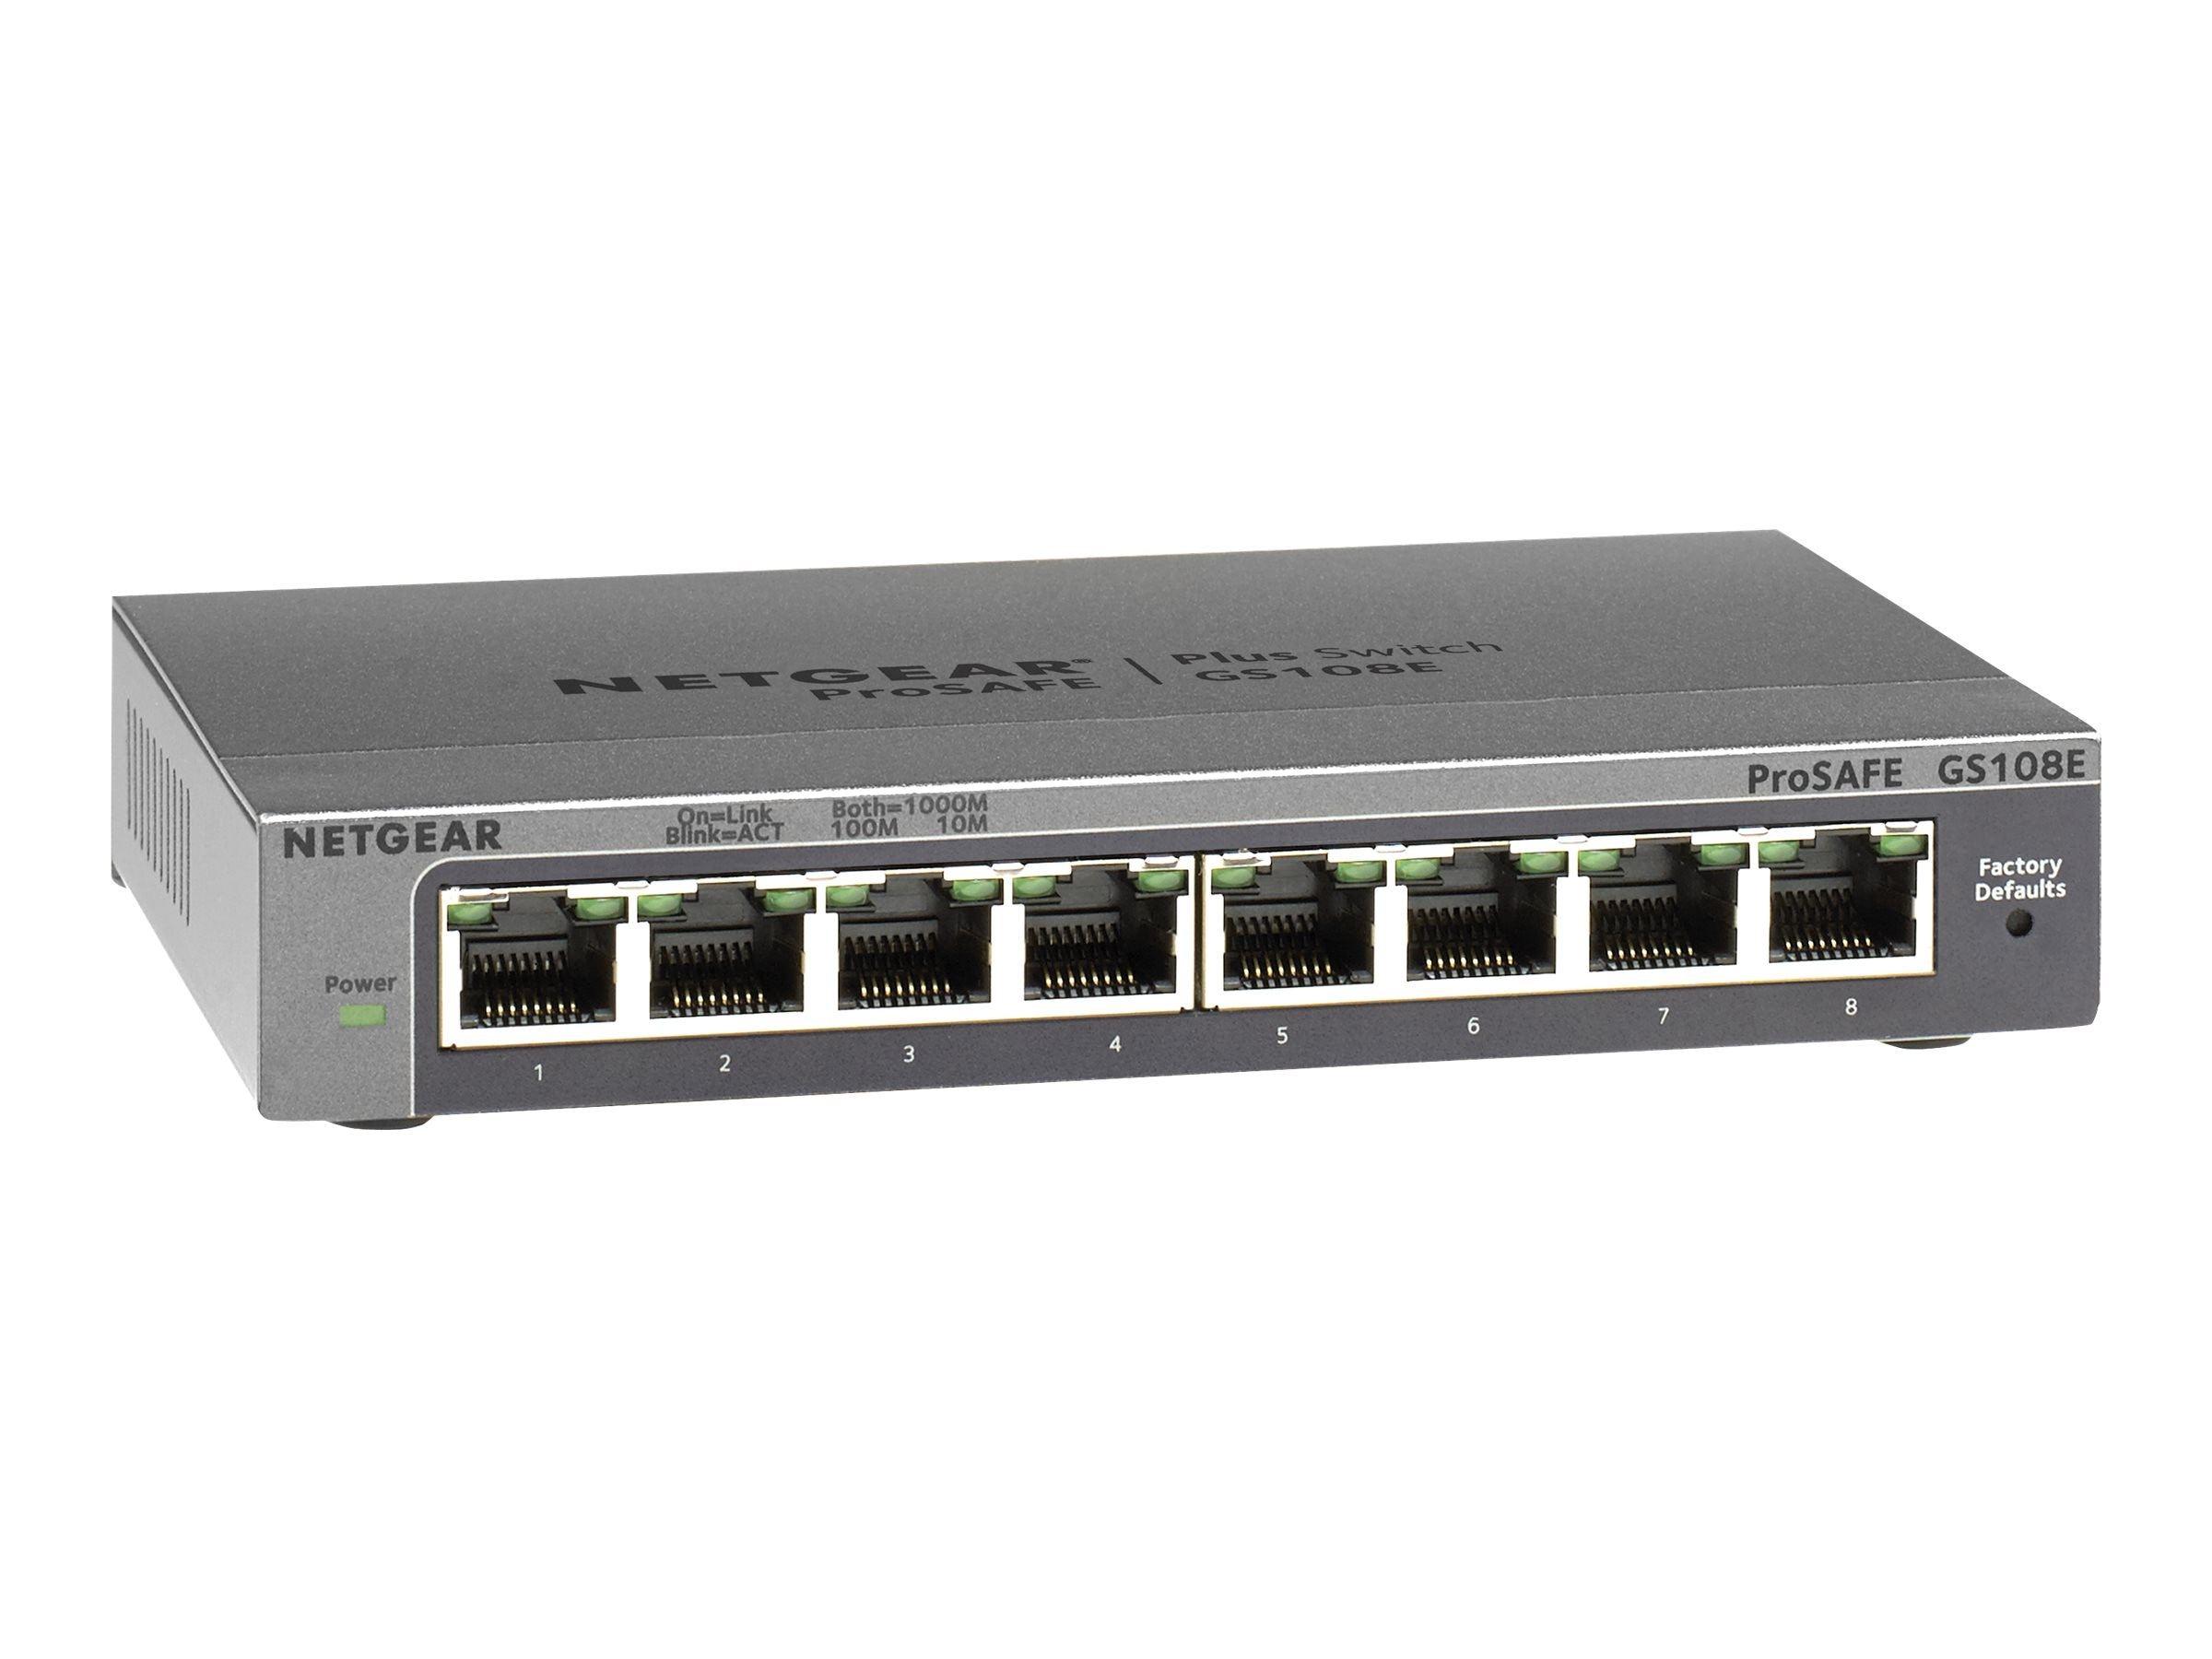 Netgear 8-port ProSafe Gigabit Plus Switch